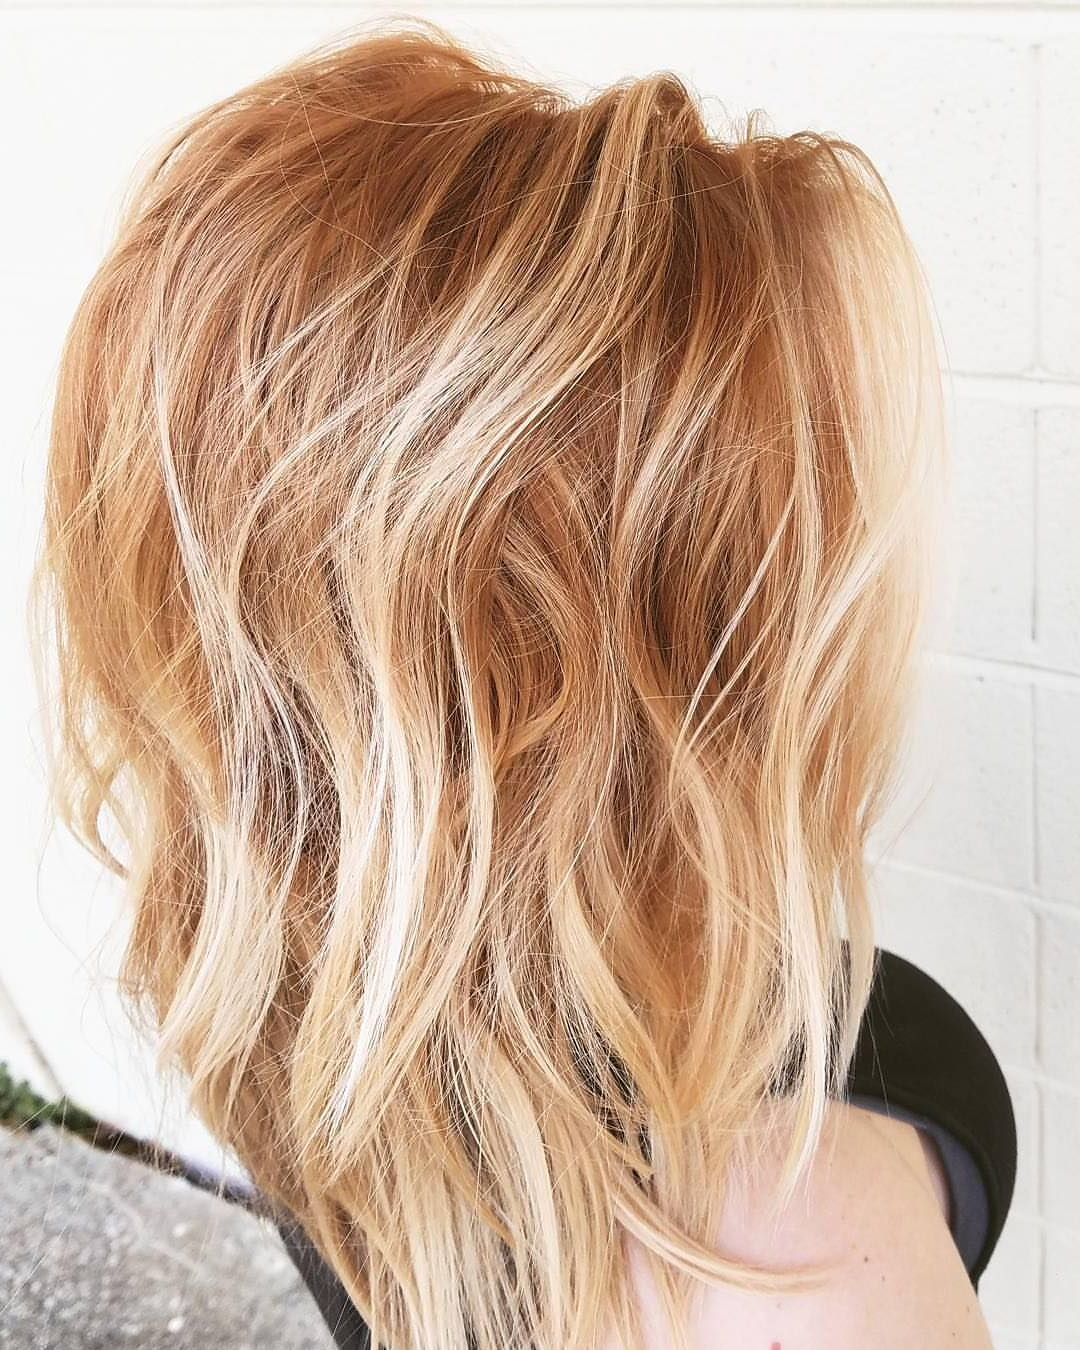 Tousled Strawberry Blonde Waves   Huuur In 2018   Pinterest   Hair Pertaining To Strawberry Blonde Short Haircuts (View 16 of 25)